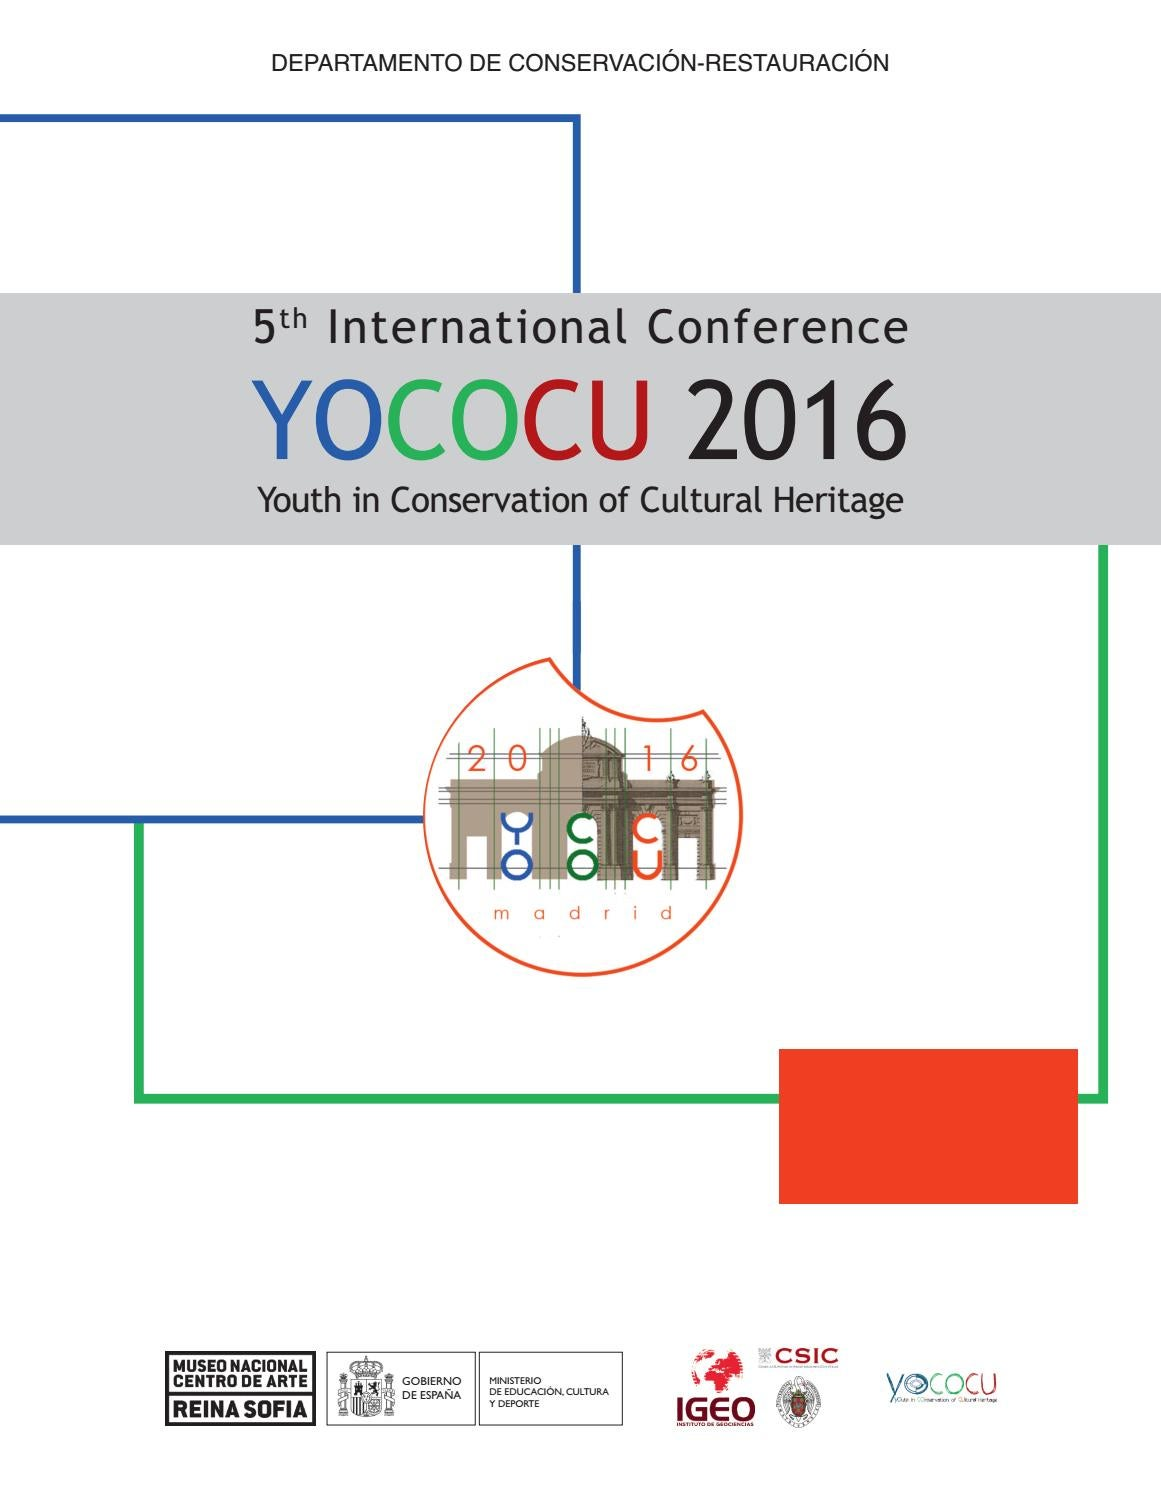 Rosali Bremen 5th International Conference Yococu 2016 Youth In Conservation Of